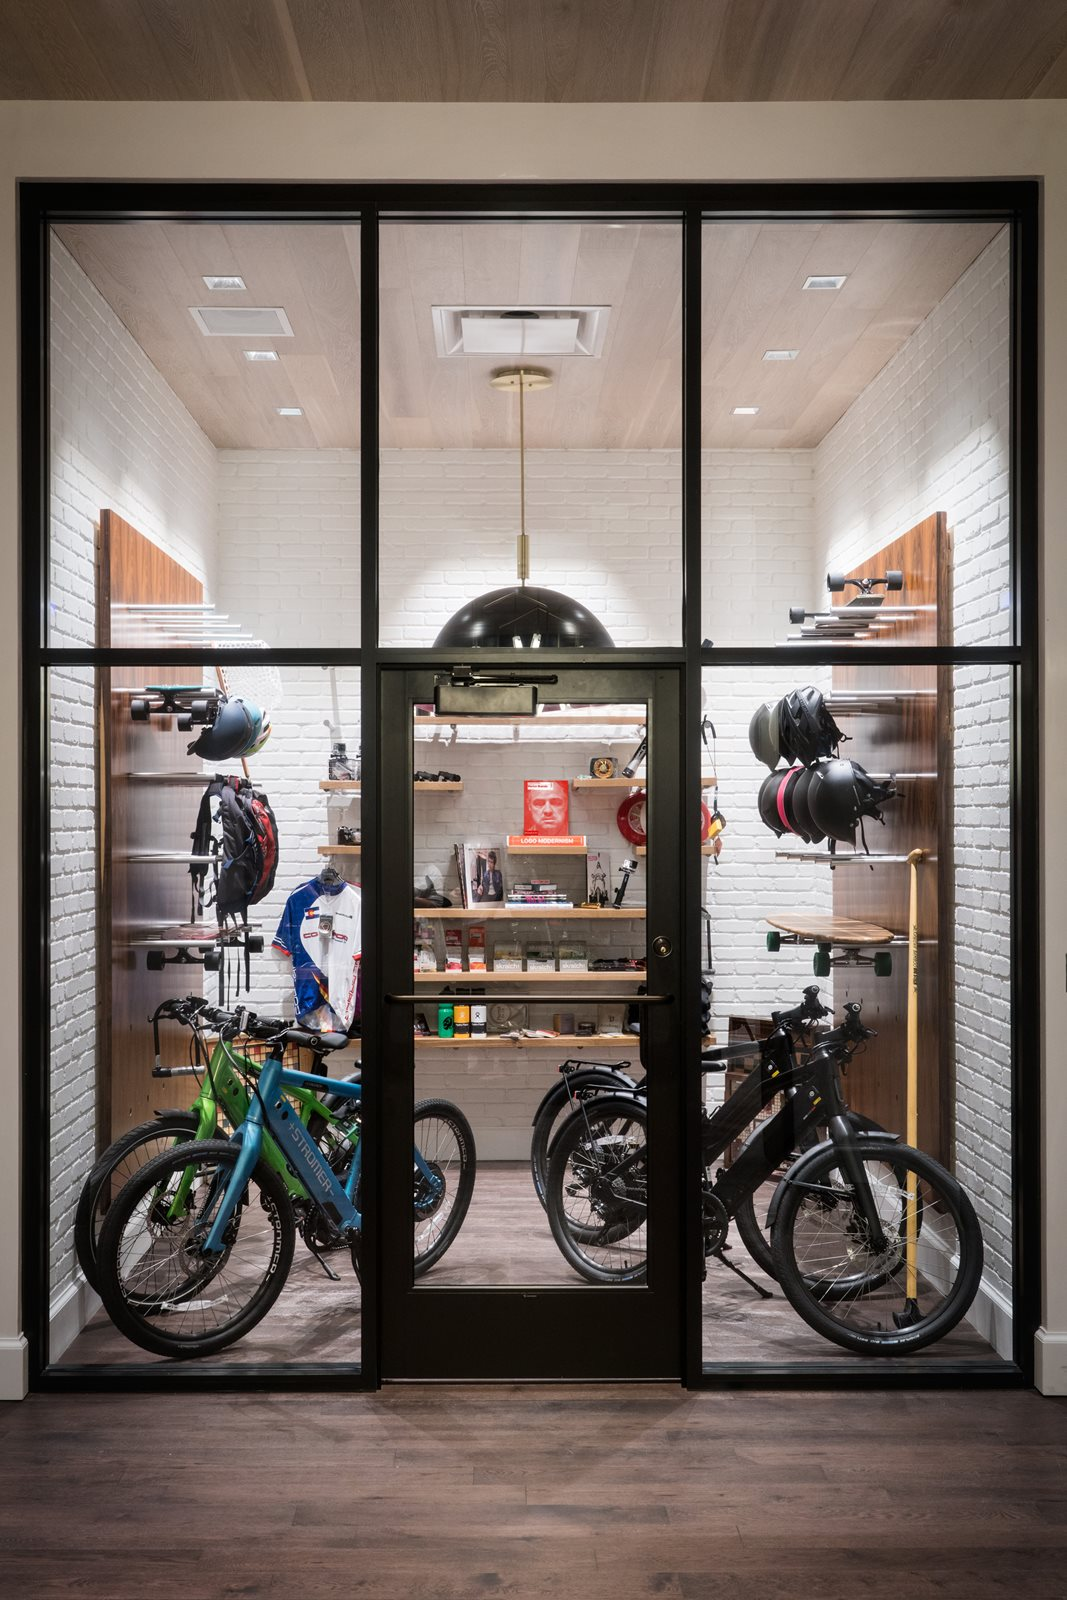 Halcyon, a hotel in Cherry Creek, Denver - bike shop with parked bikes, helmets on racks, and a counter